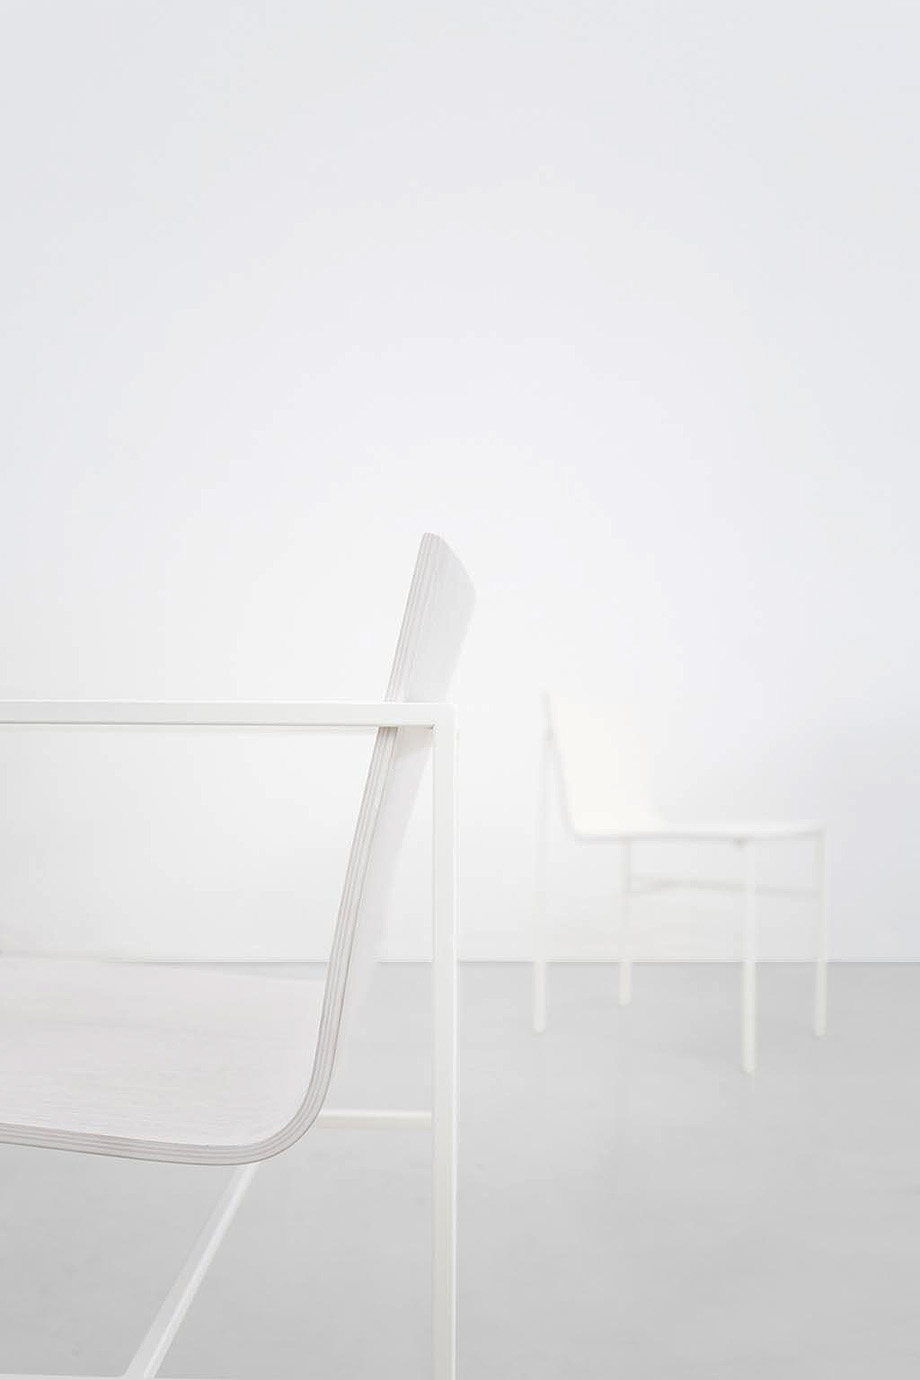 silla a-collection de fran silvestre y capdell (9)